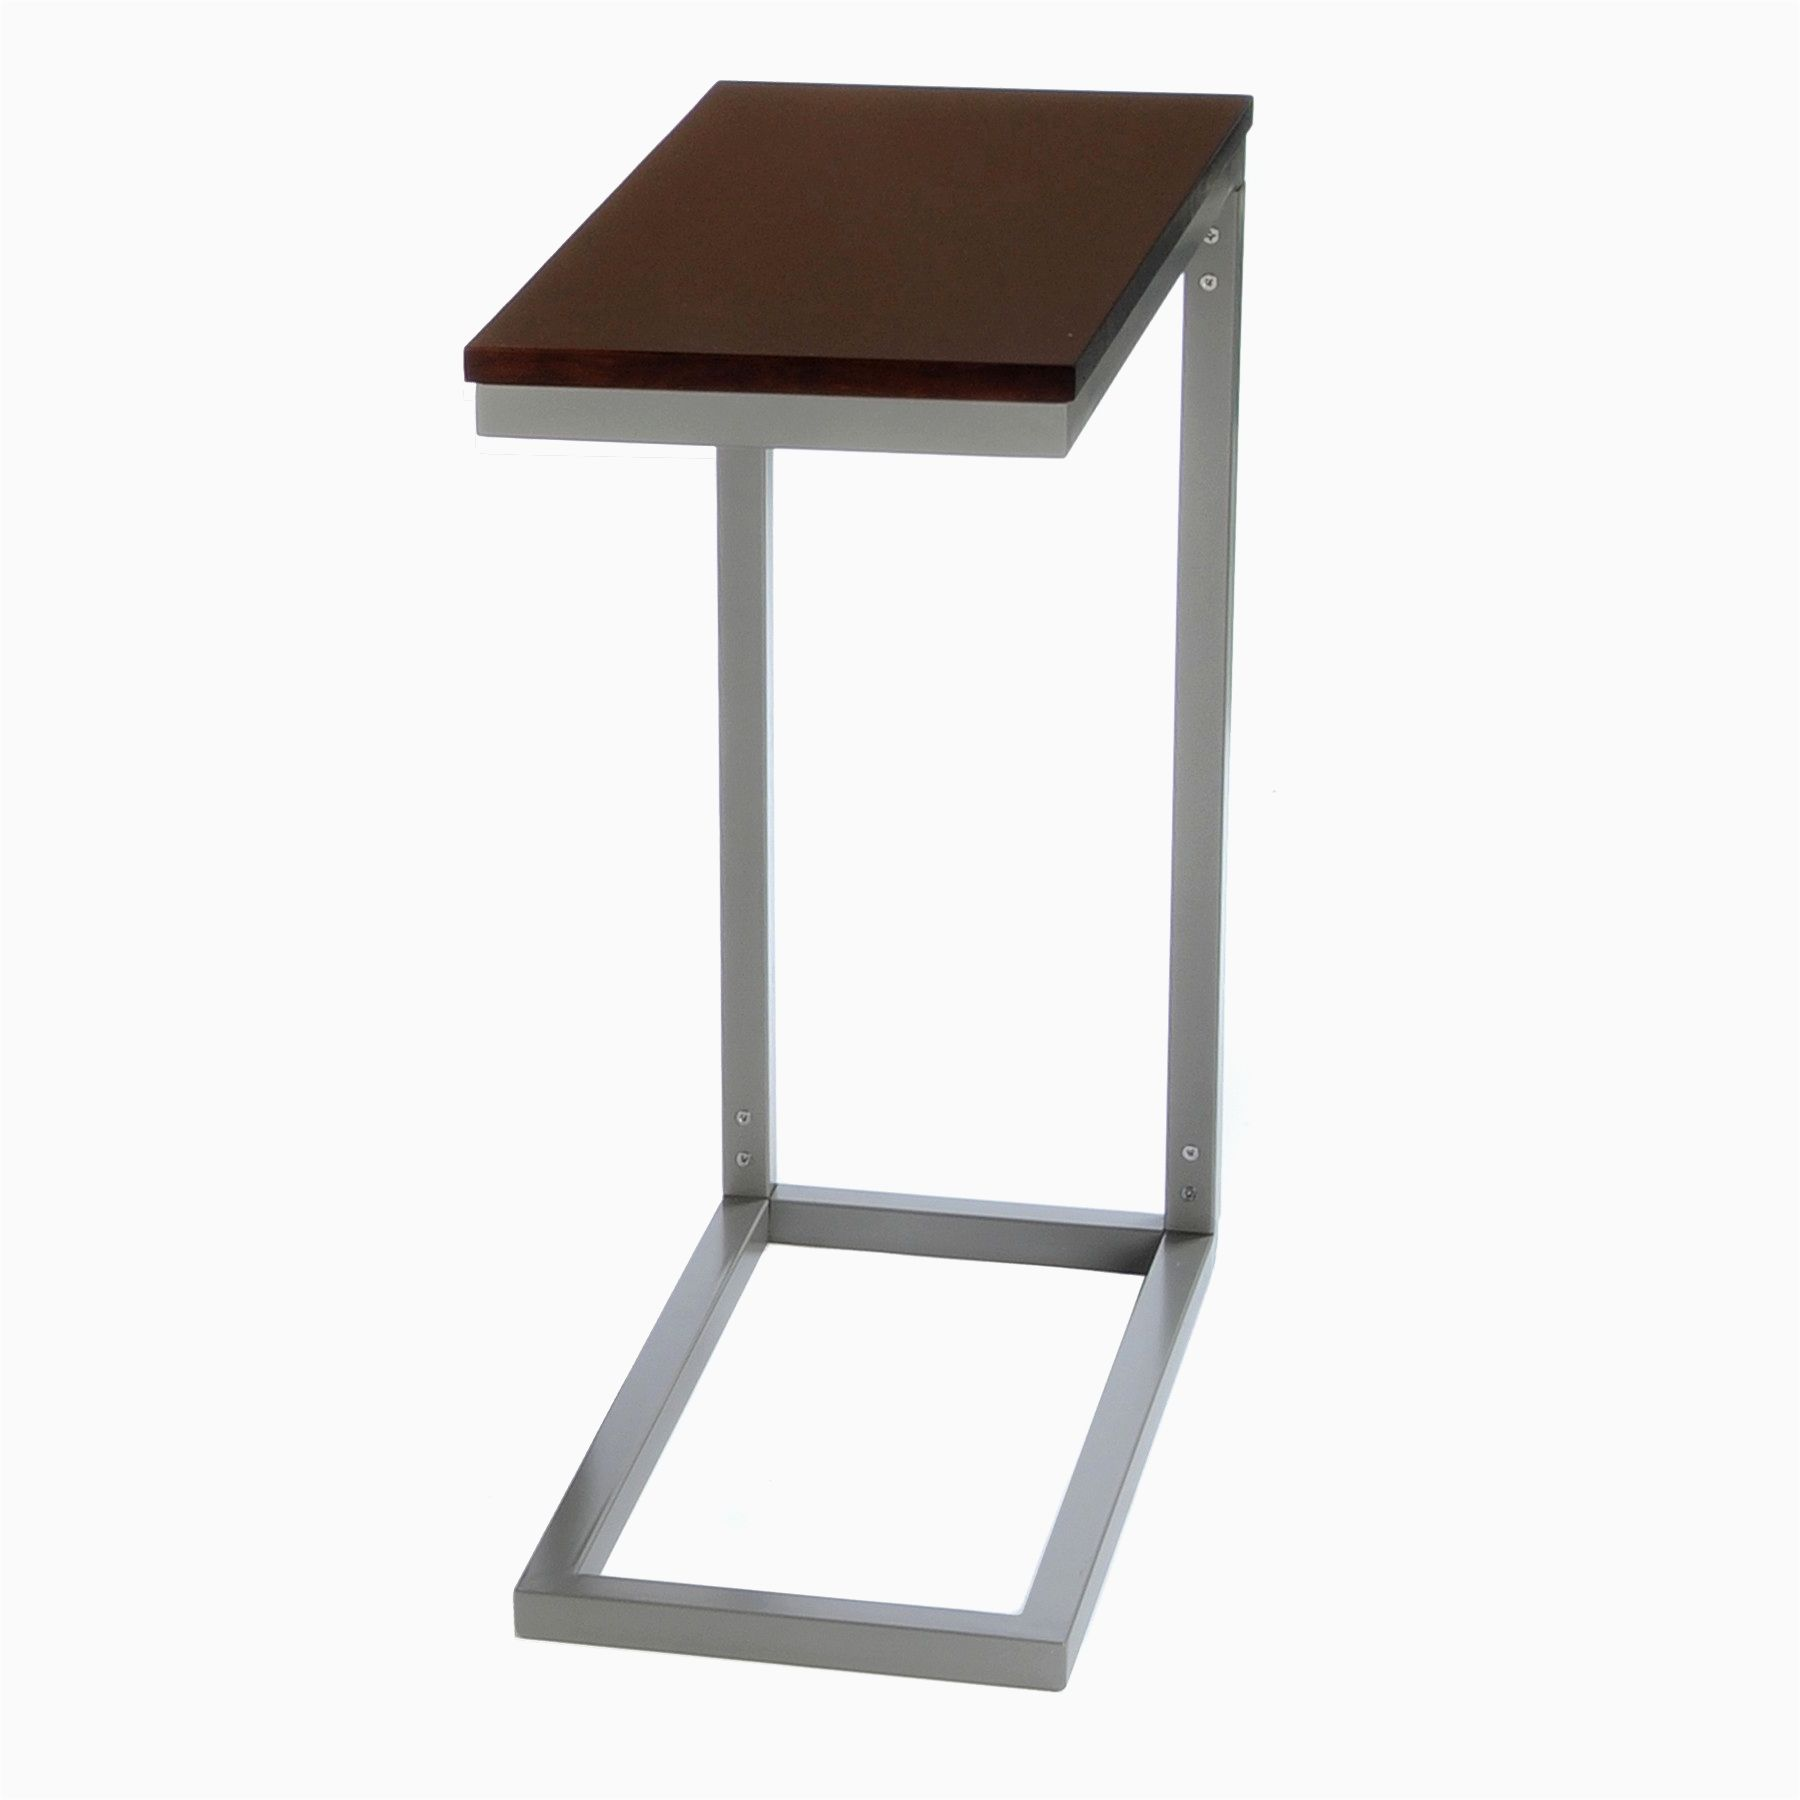 best wood and metal sofa table concept-Wonderful Wood and Metal sofa Table Design